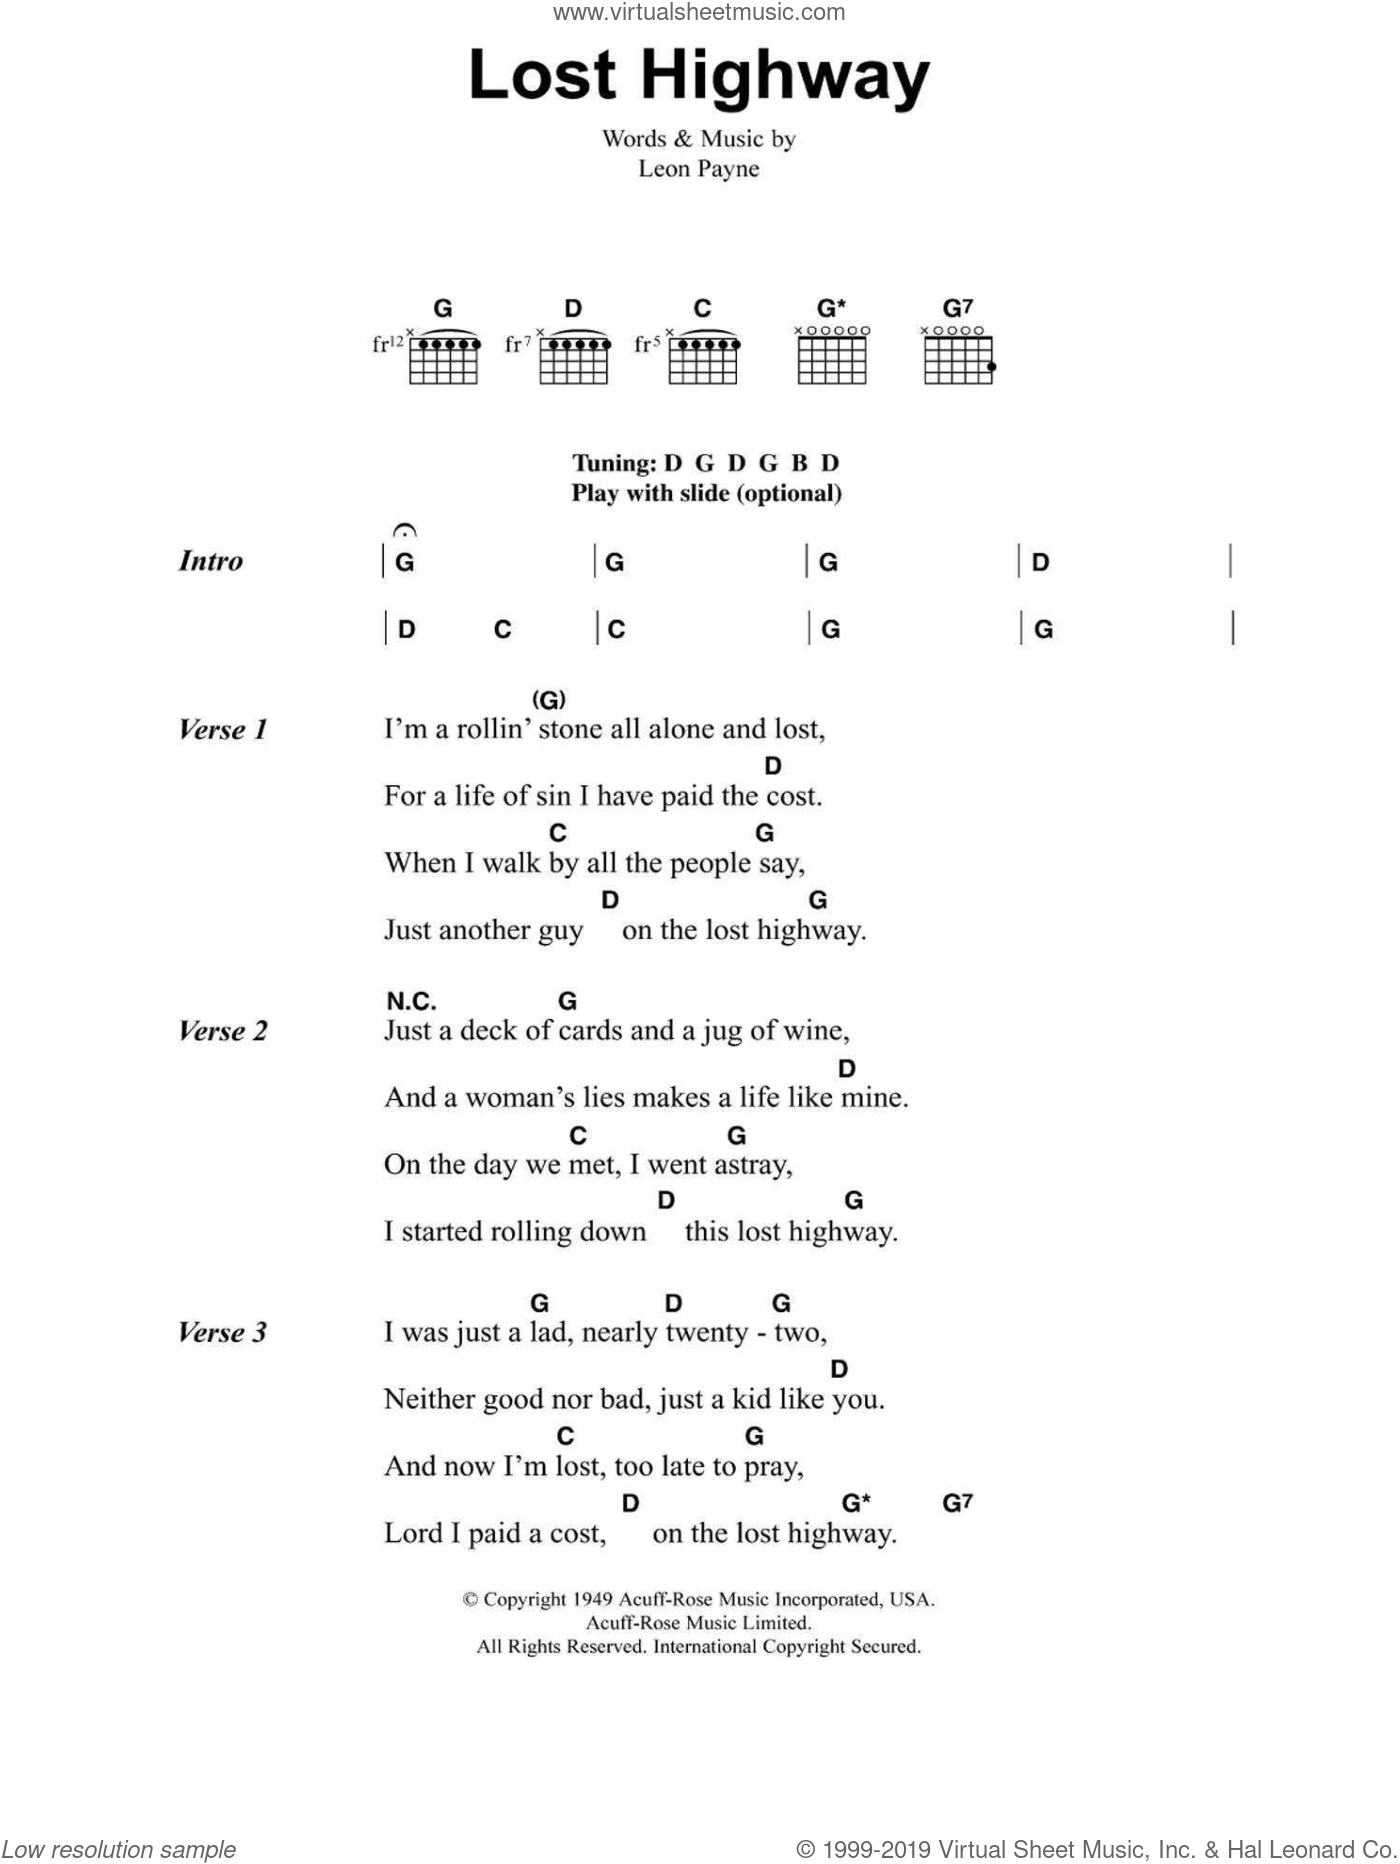 Lost Highway sheet music for guitar (chords) by Hank Williams and Leon Payne, intermediate skill level